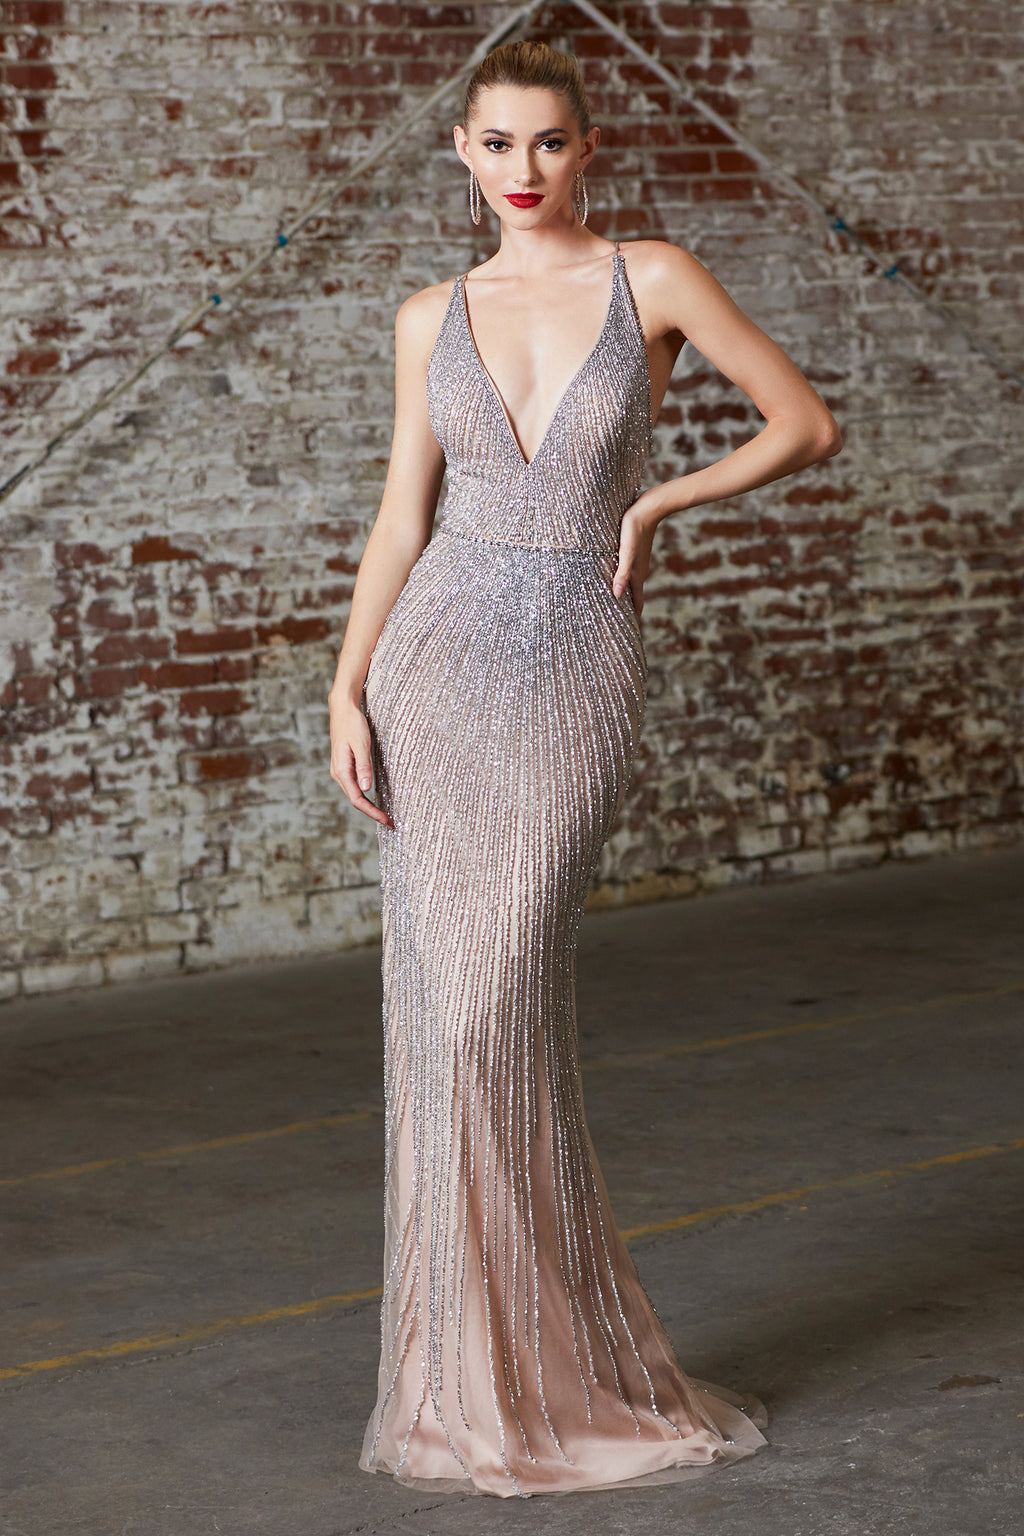 Shimmering Champagne Heavy Crystal & Sequin Gown Style #LACK920 | Prom 2020